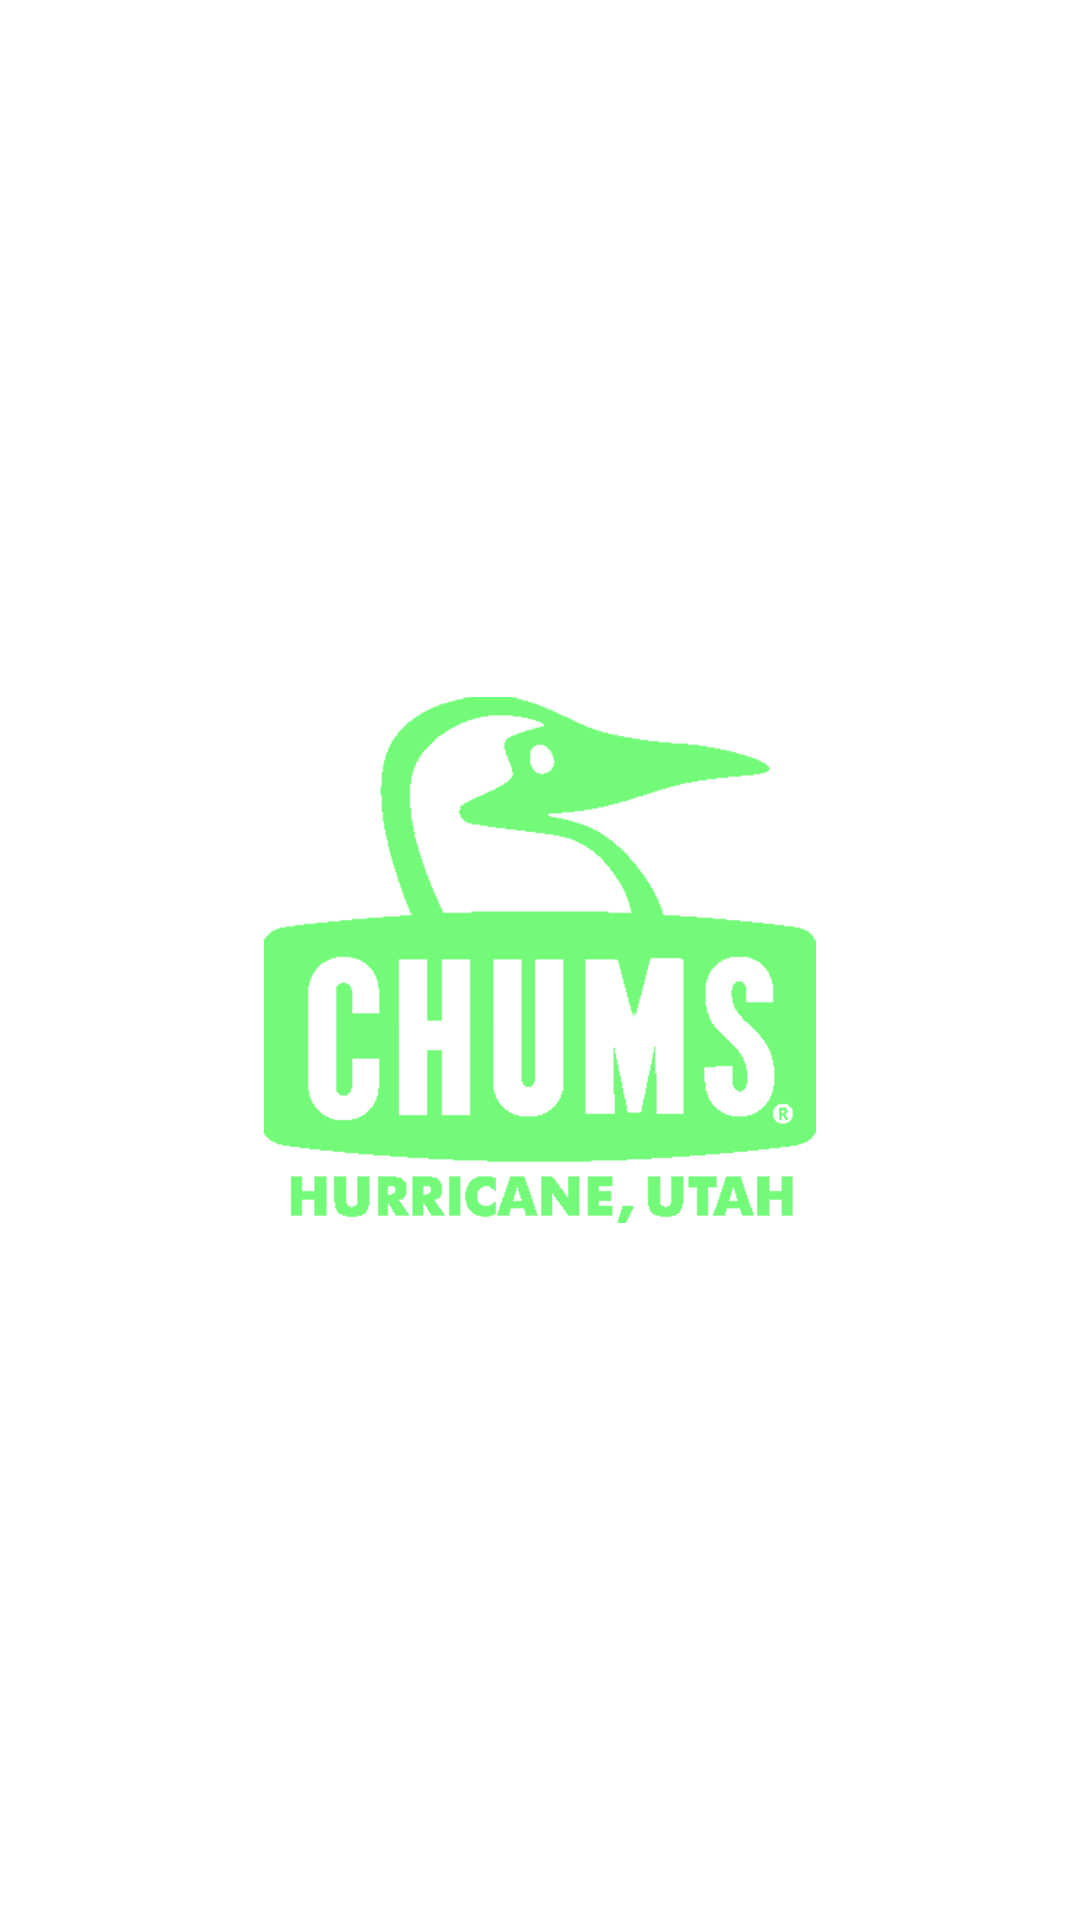 chums44 - 50 CHUMS HQ Smartphone Wallpaper Collection